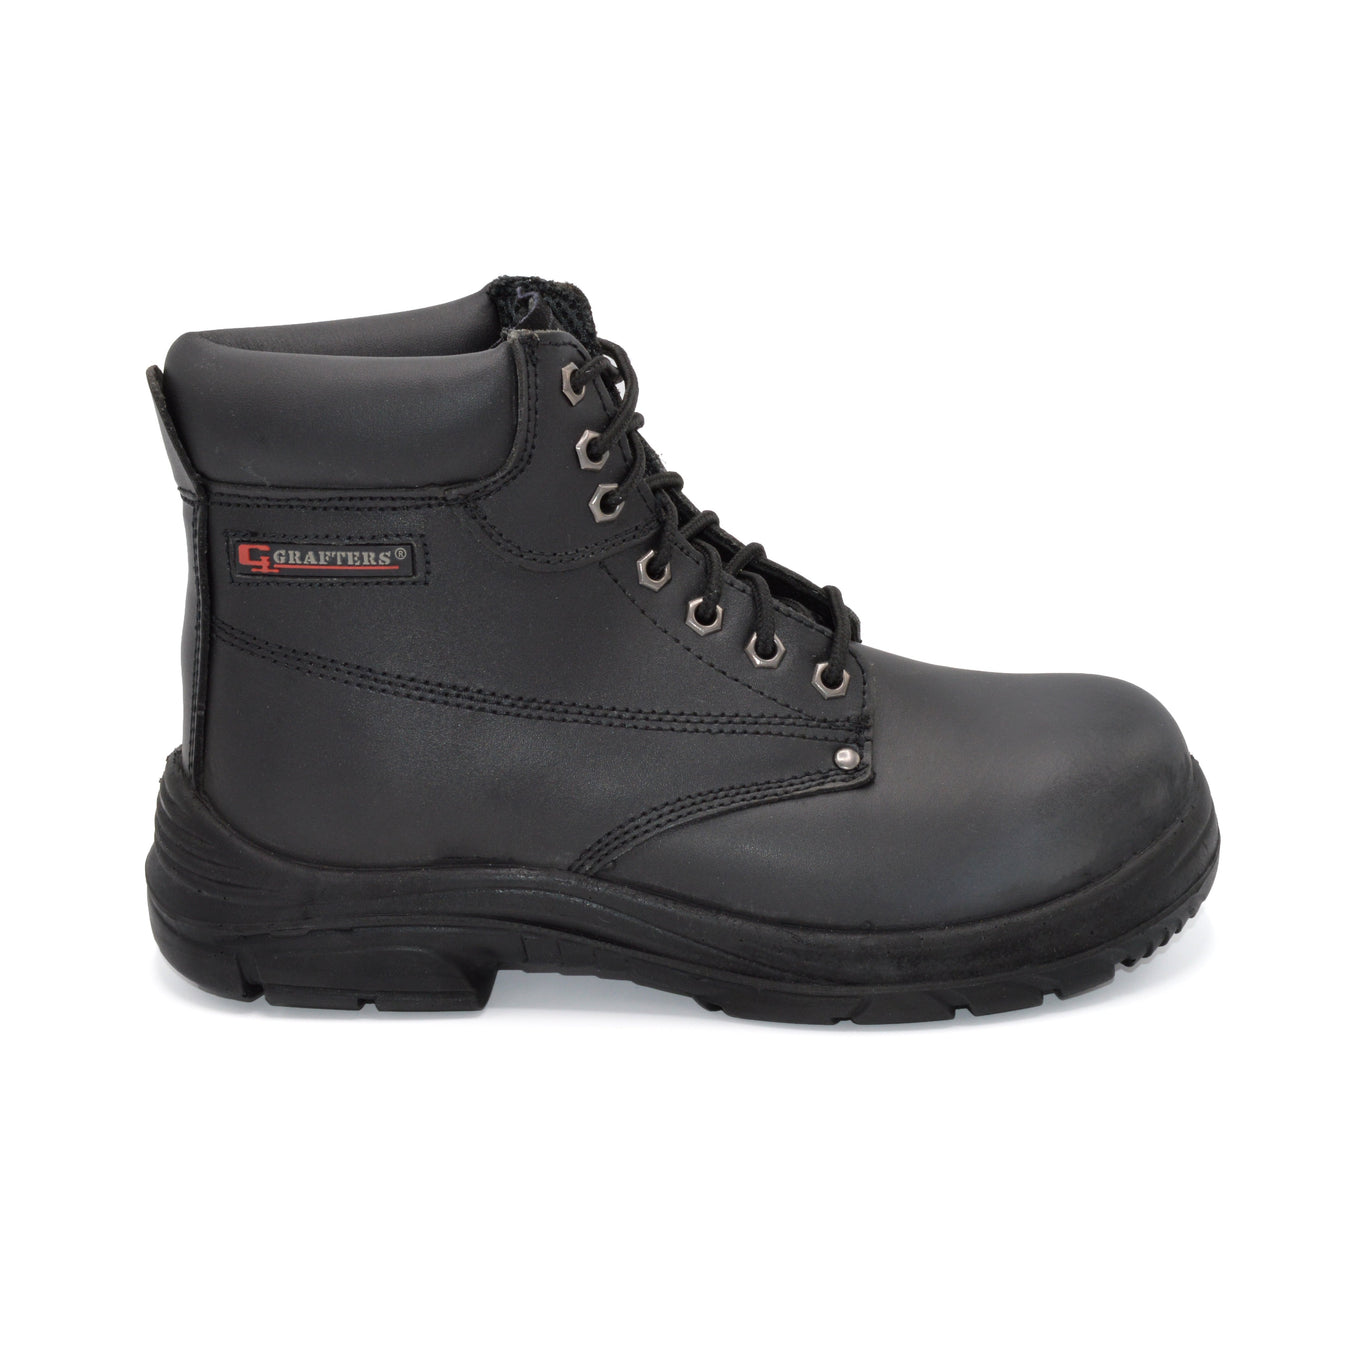 Mens Wide Fit Safety Boots For Work. Extra Wide Available.